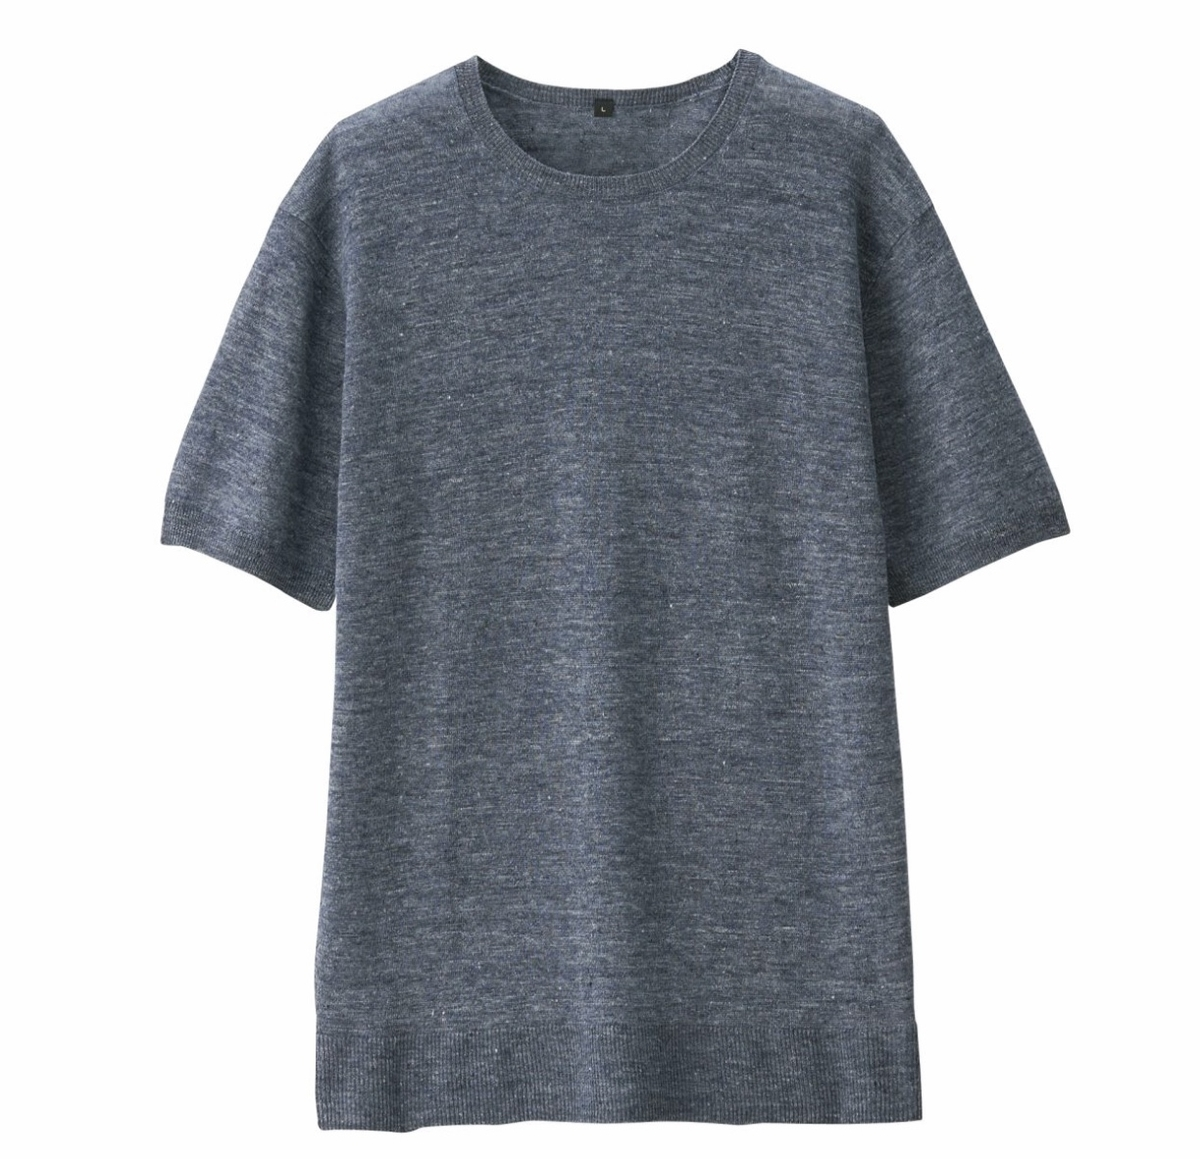 f:id:fortheshirt:20190603115708j:plain